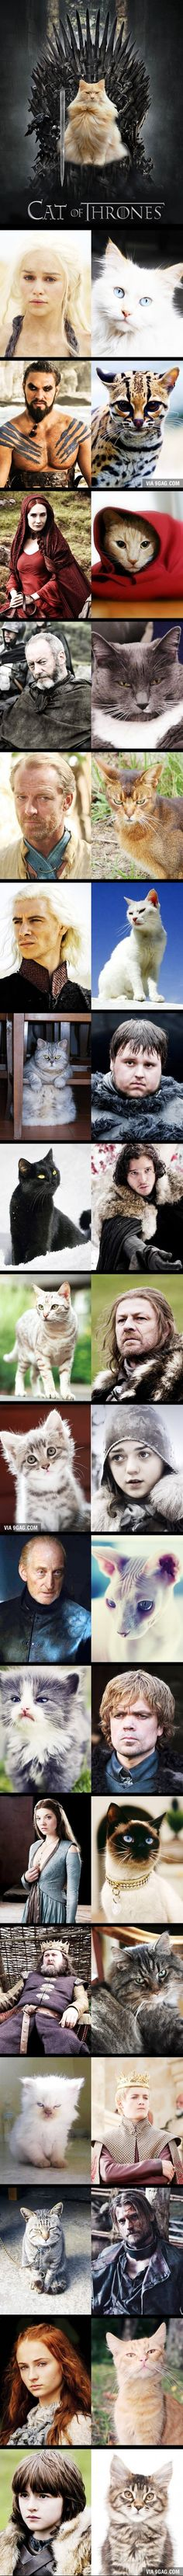 cats + Game of Thrones = Internet inevitability